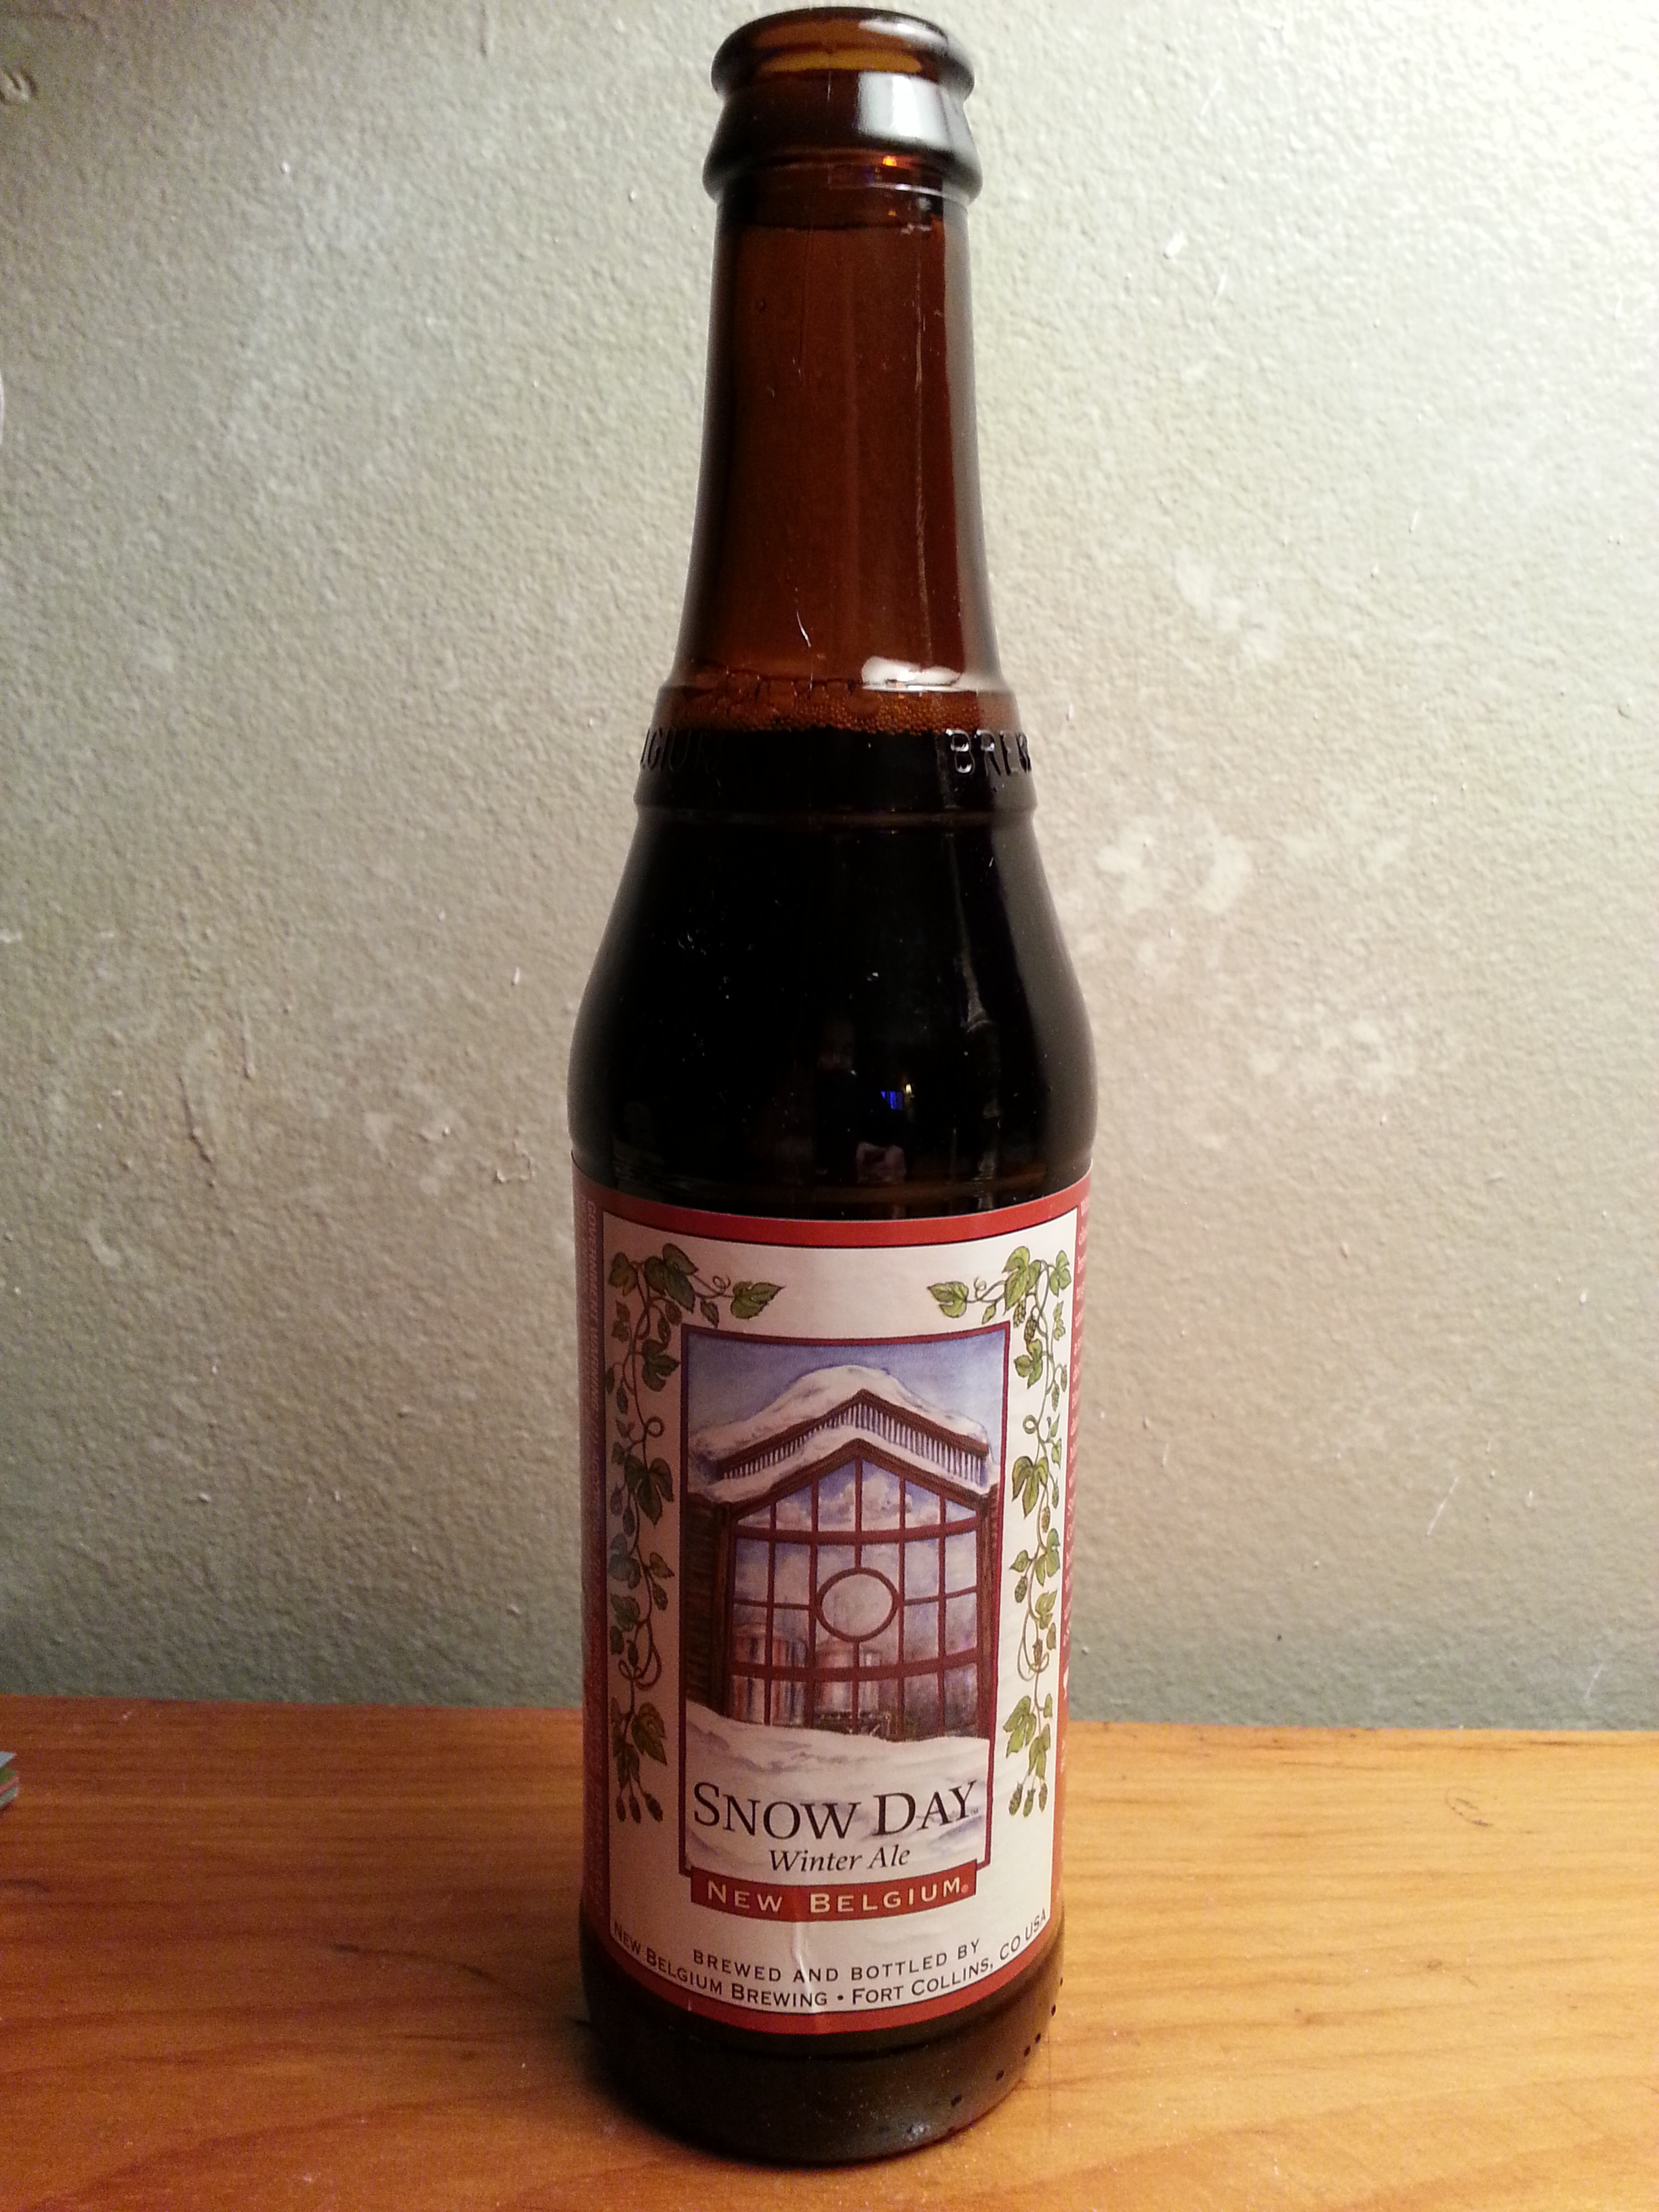 New Belgium Snow Day Winter Ale